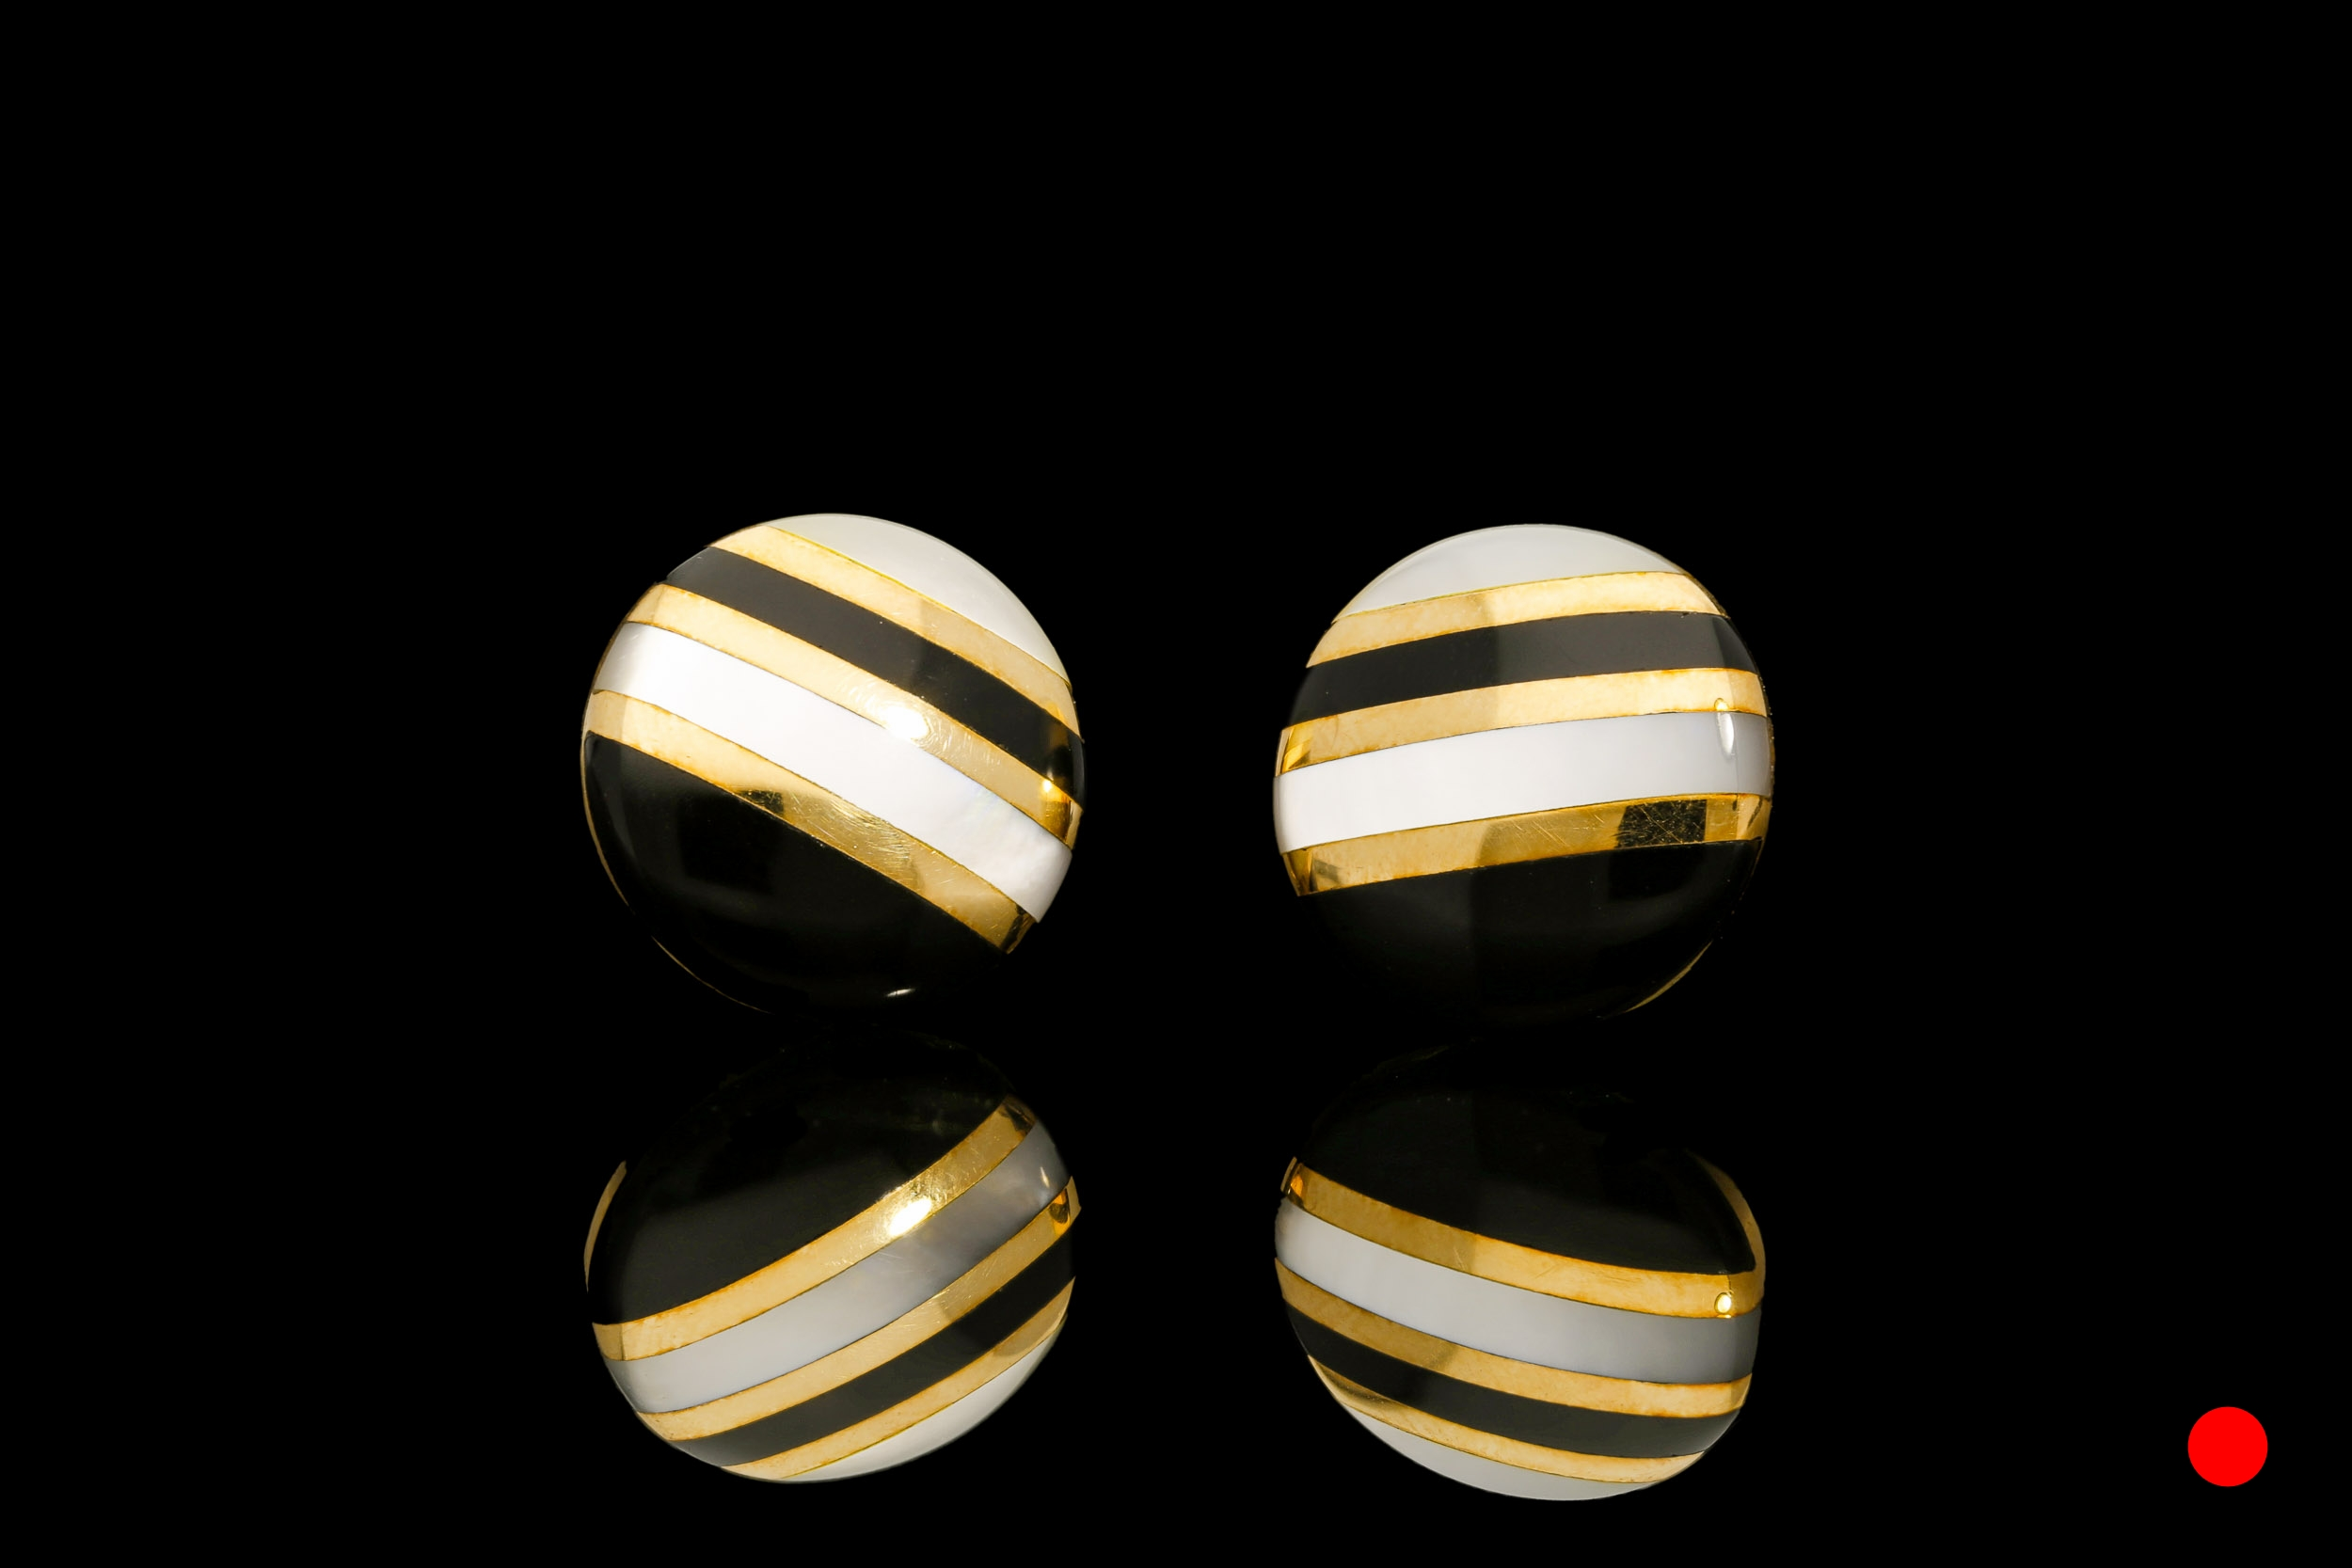 A pair of 1950's 14ct yellow gold onyx and mother of pearl inlayed domed earrings | £1800